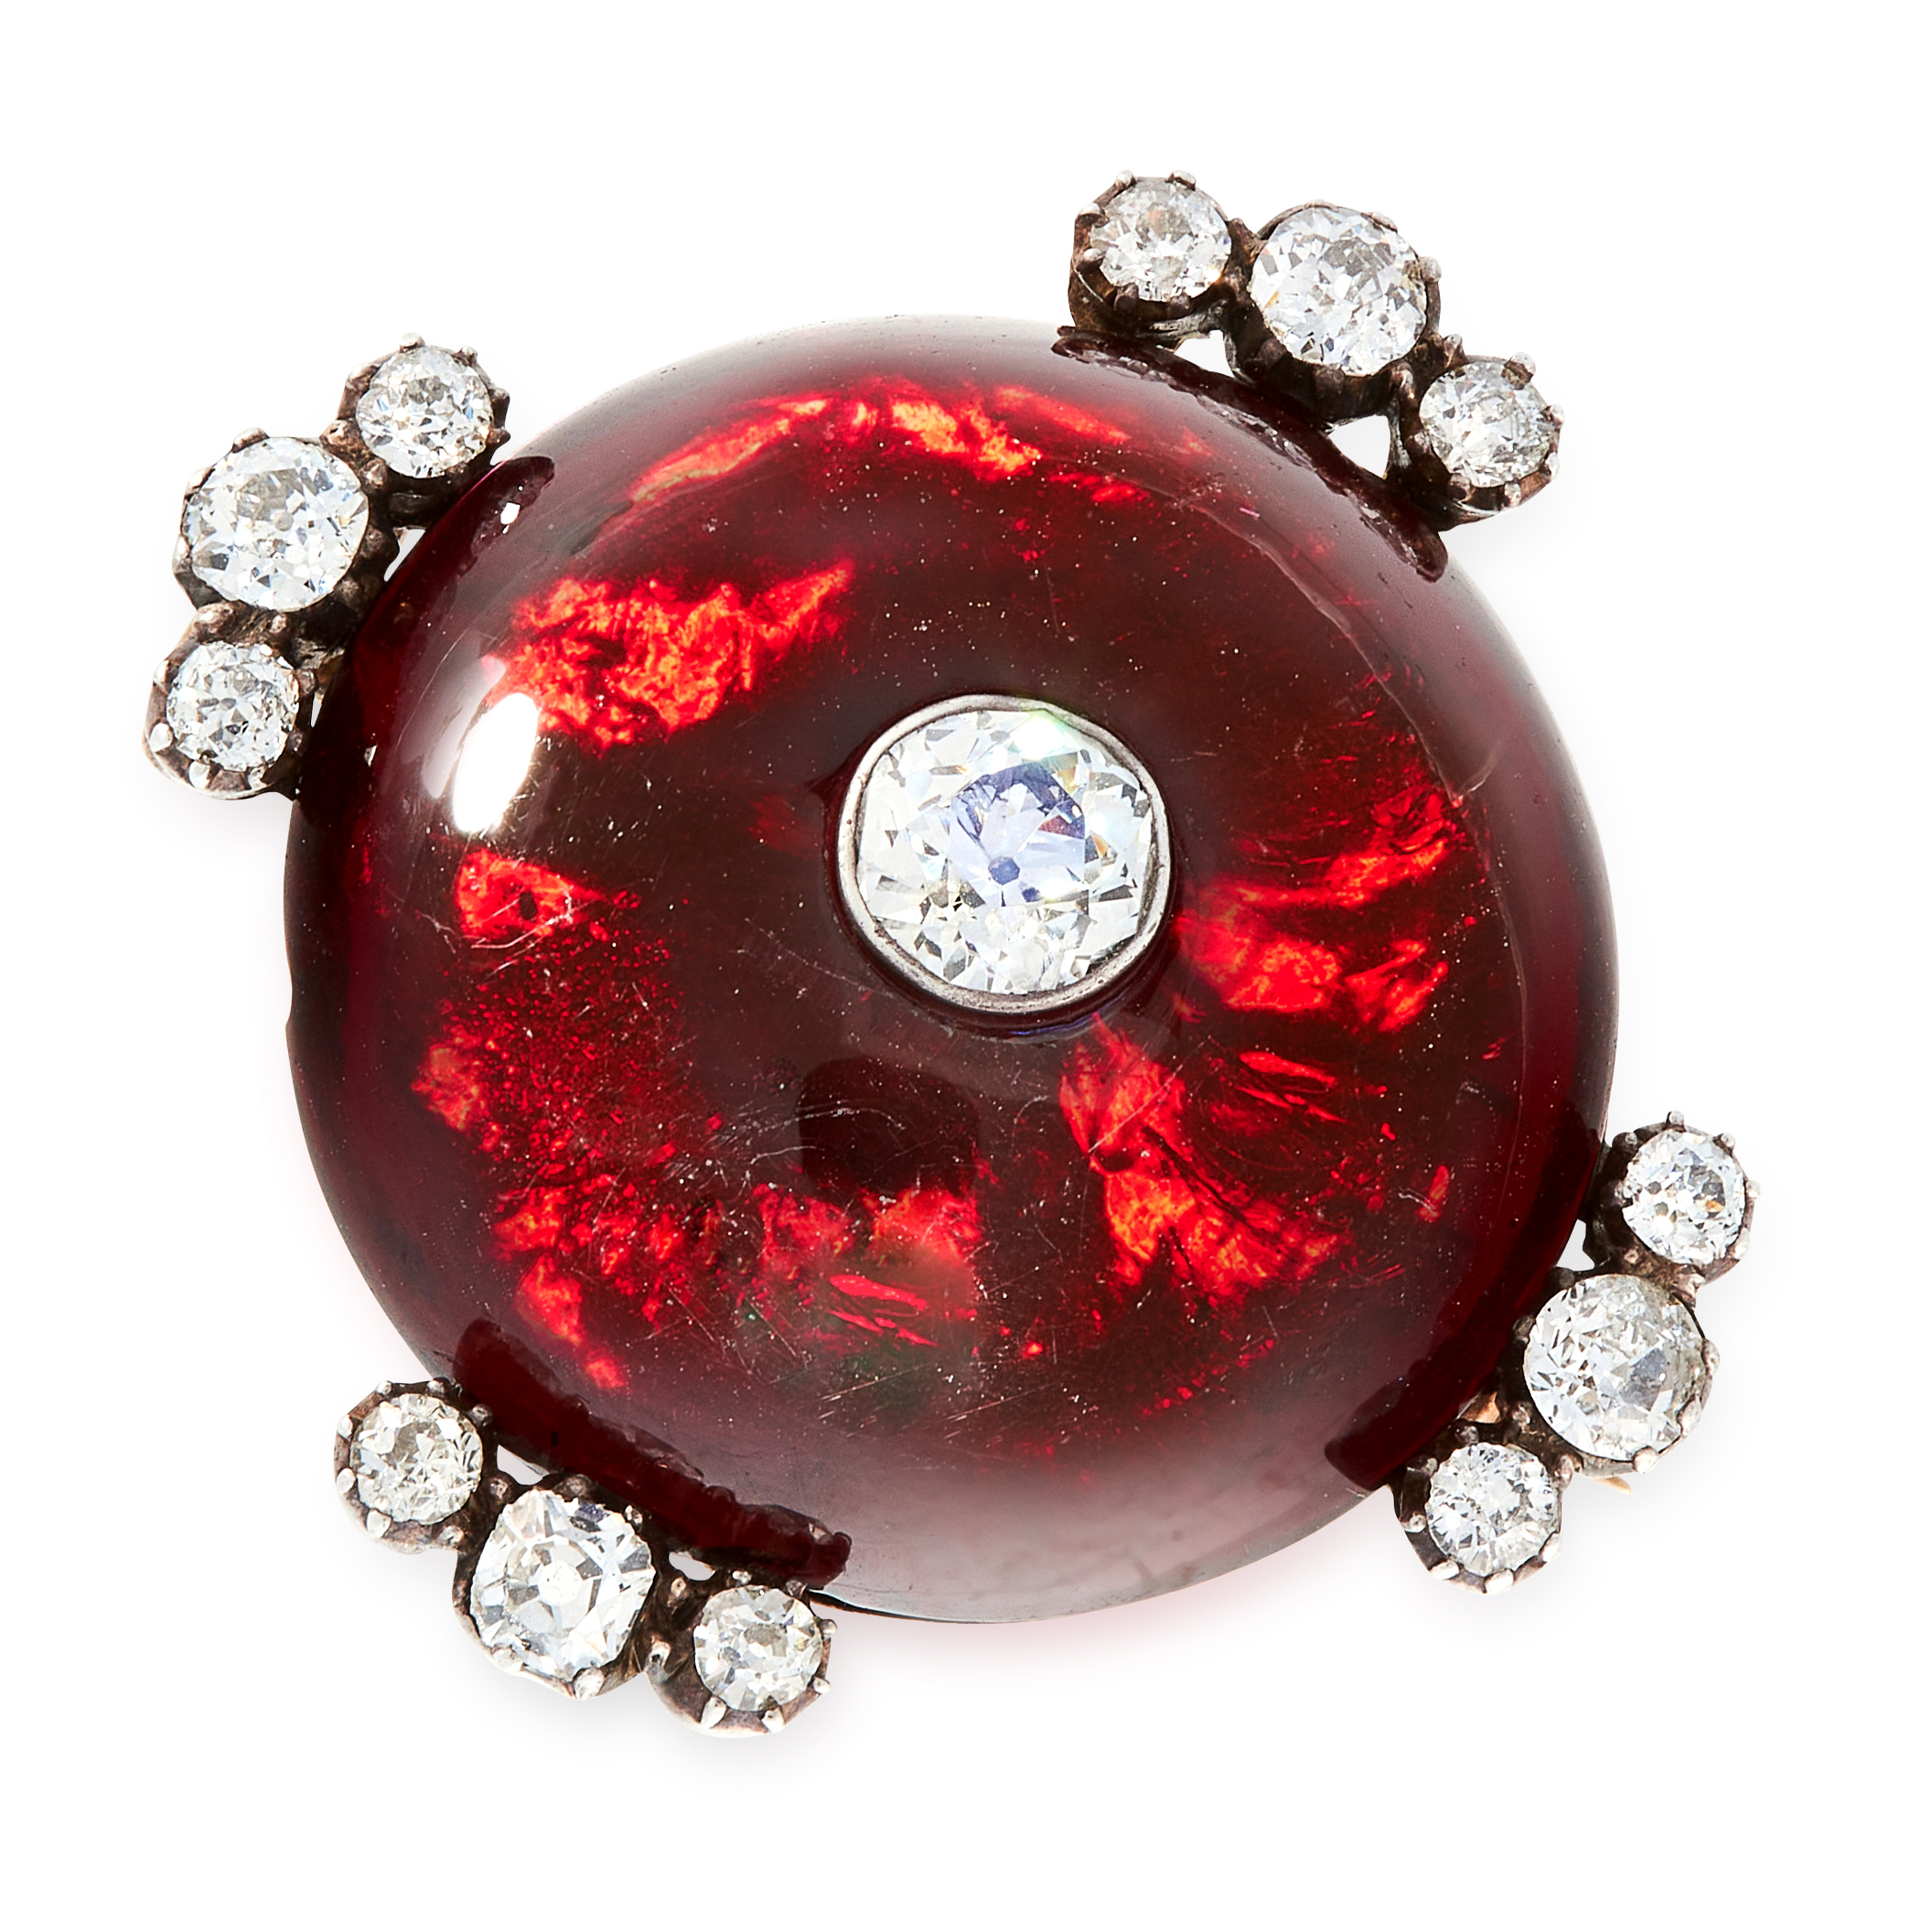 AN ANTIQUE GARNET AND DIAMOND BROOCH in yellow gold and silver, comprising a circular cabochon